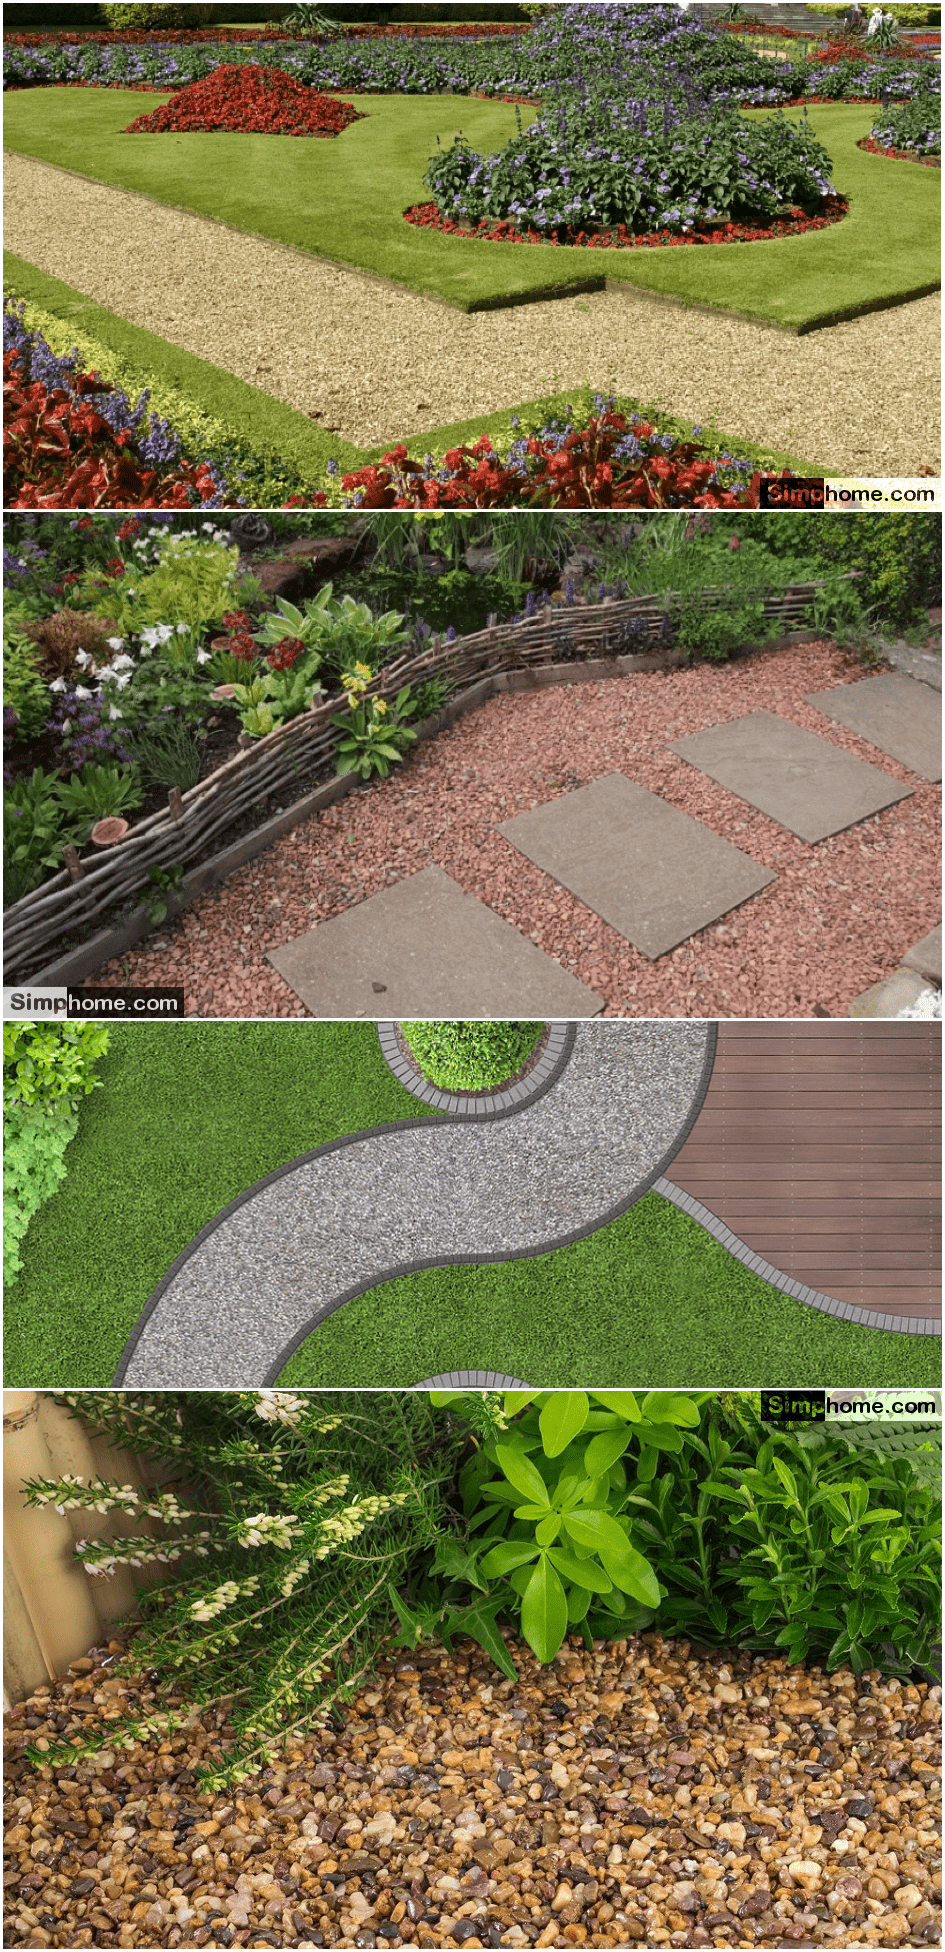 2.Backyard Pathway Ideas via Simphome.com